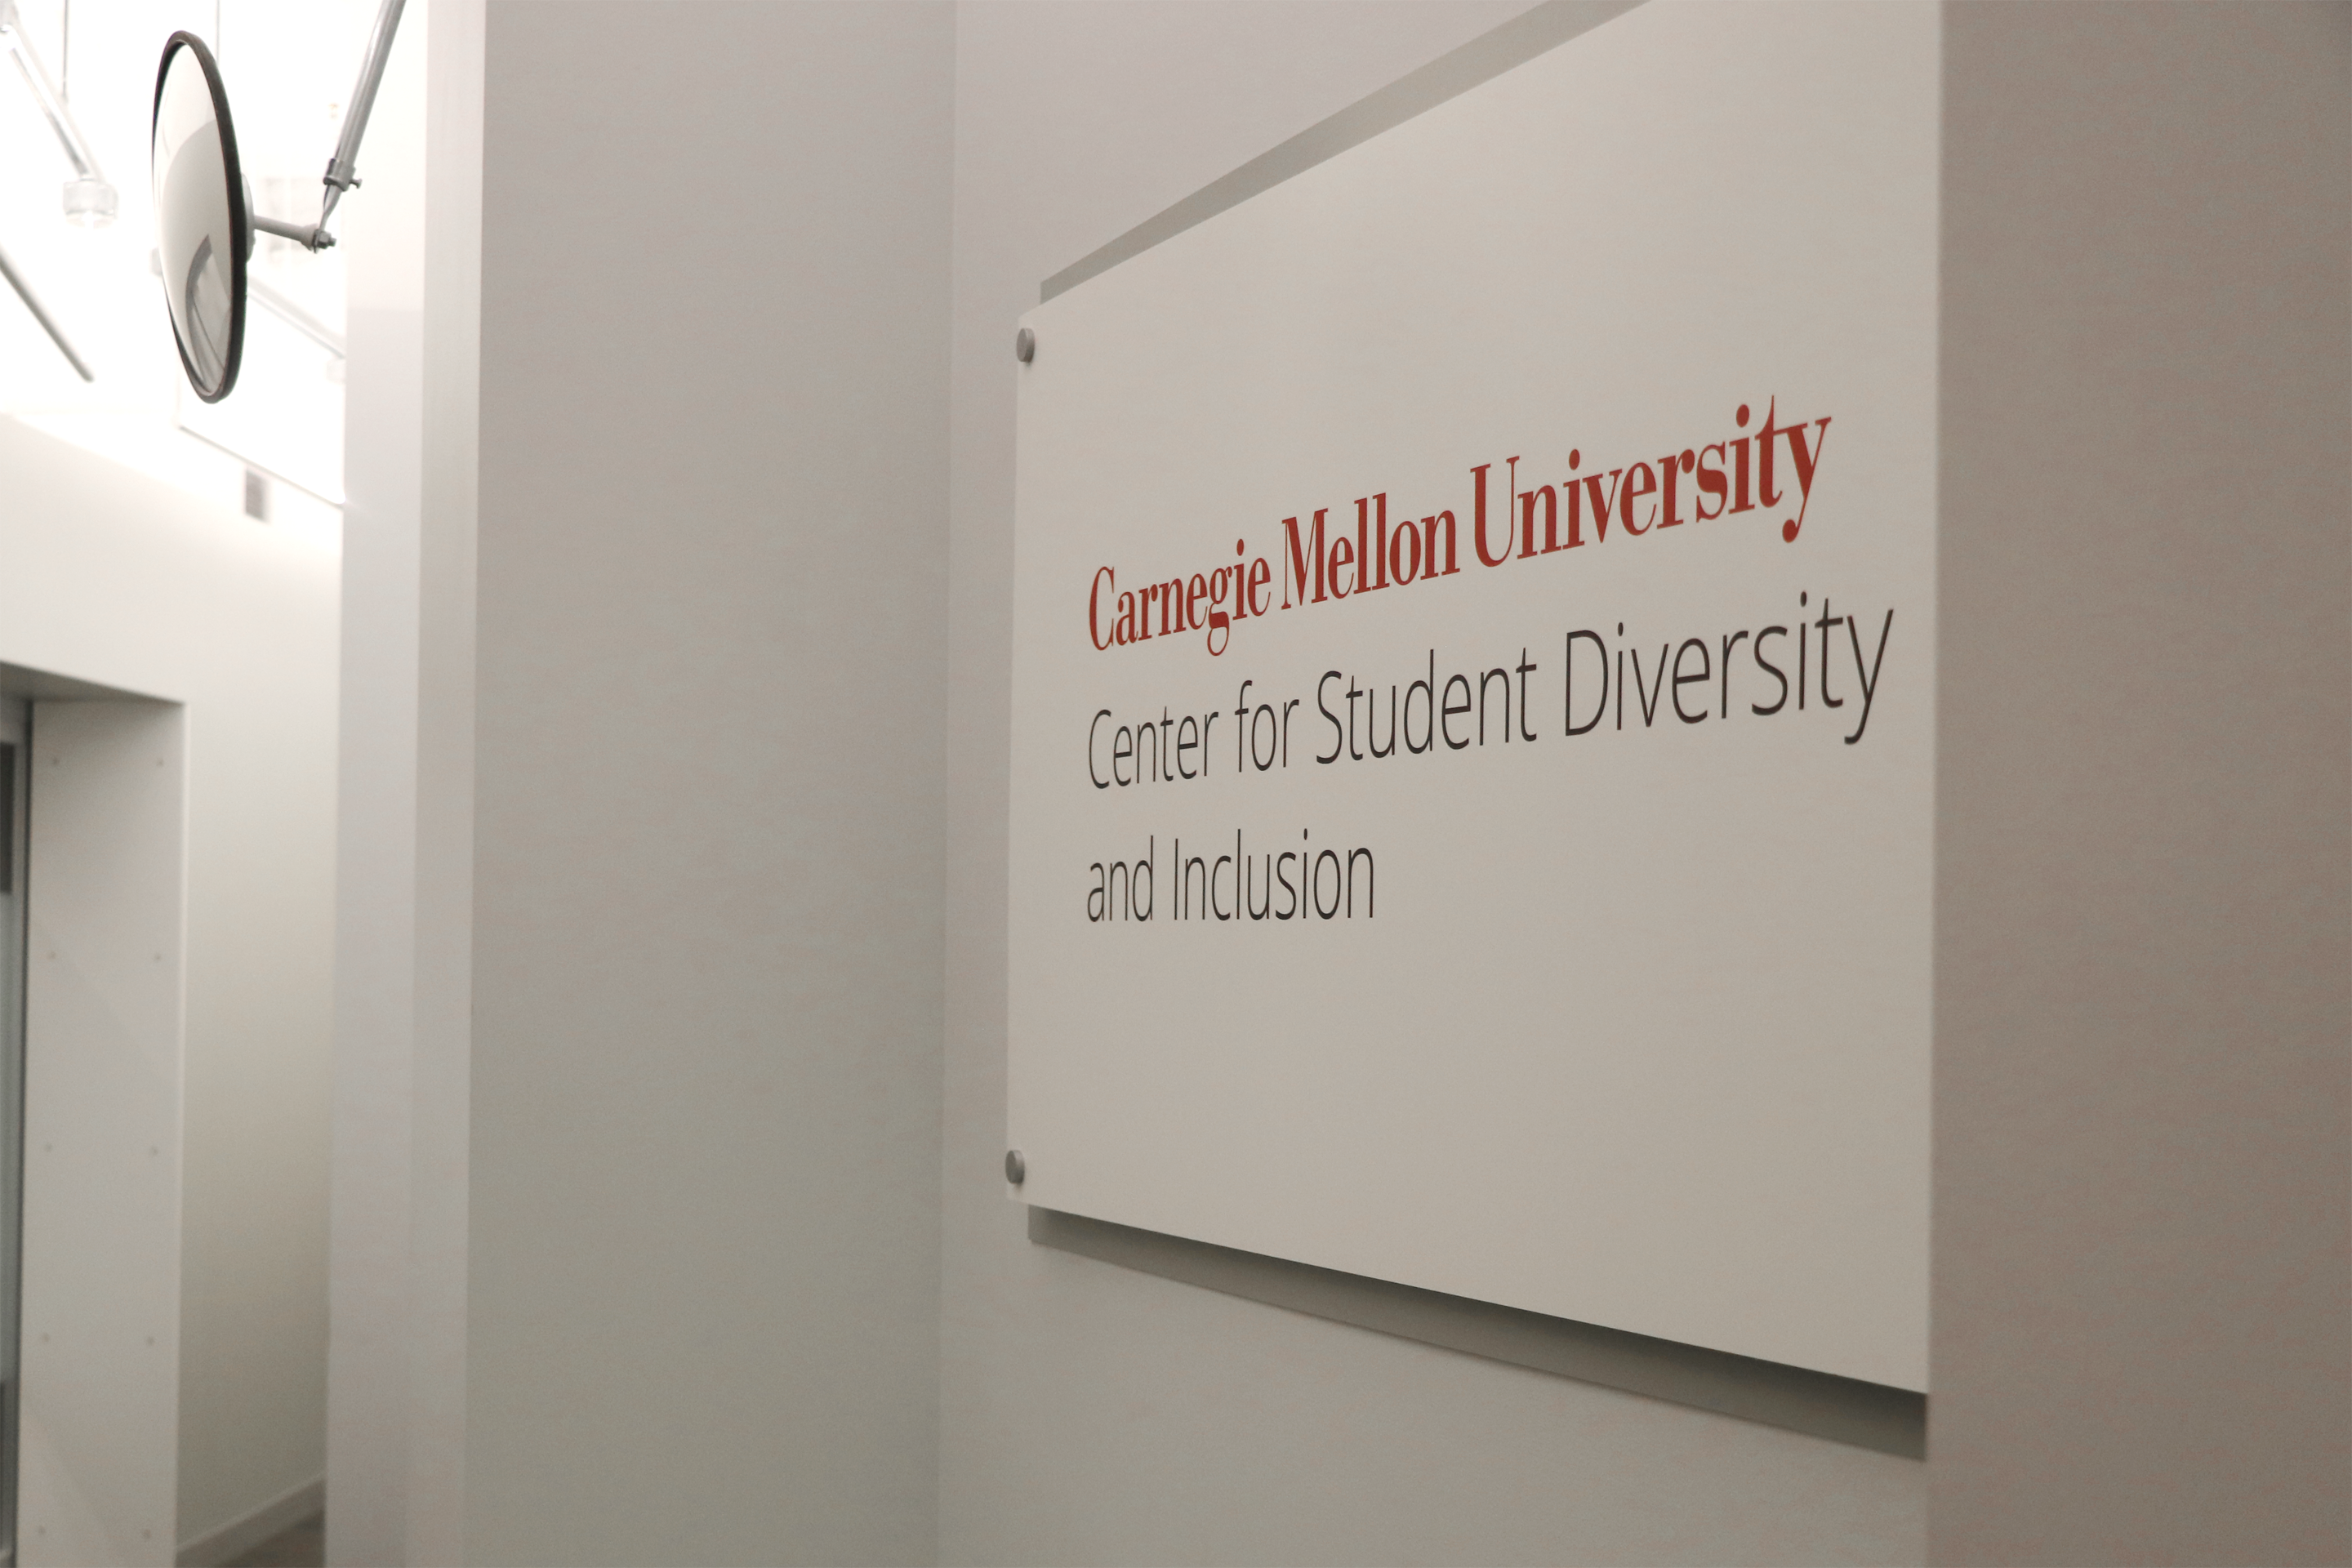 The Center for Student Diversity and Inclusion hired Esteban Alcala, Marelyn Maces, and Shanai Sloan. All three have experience working with college students.